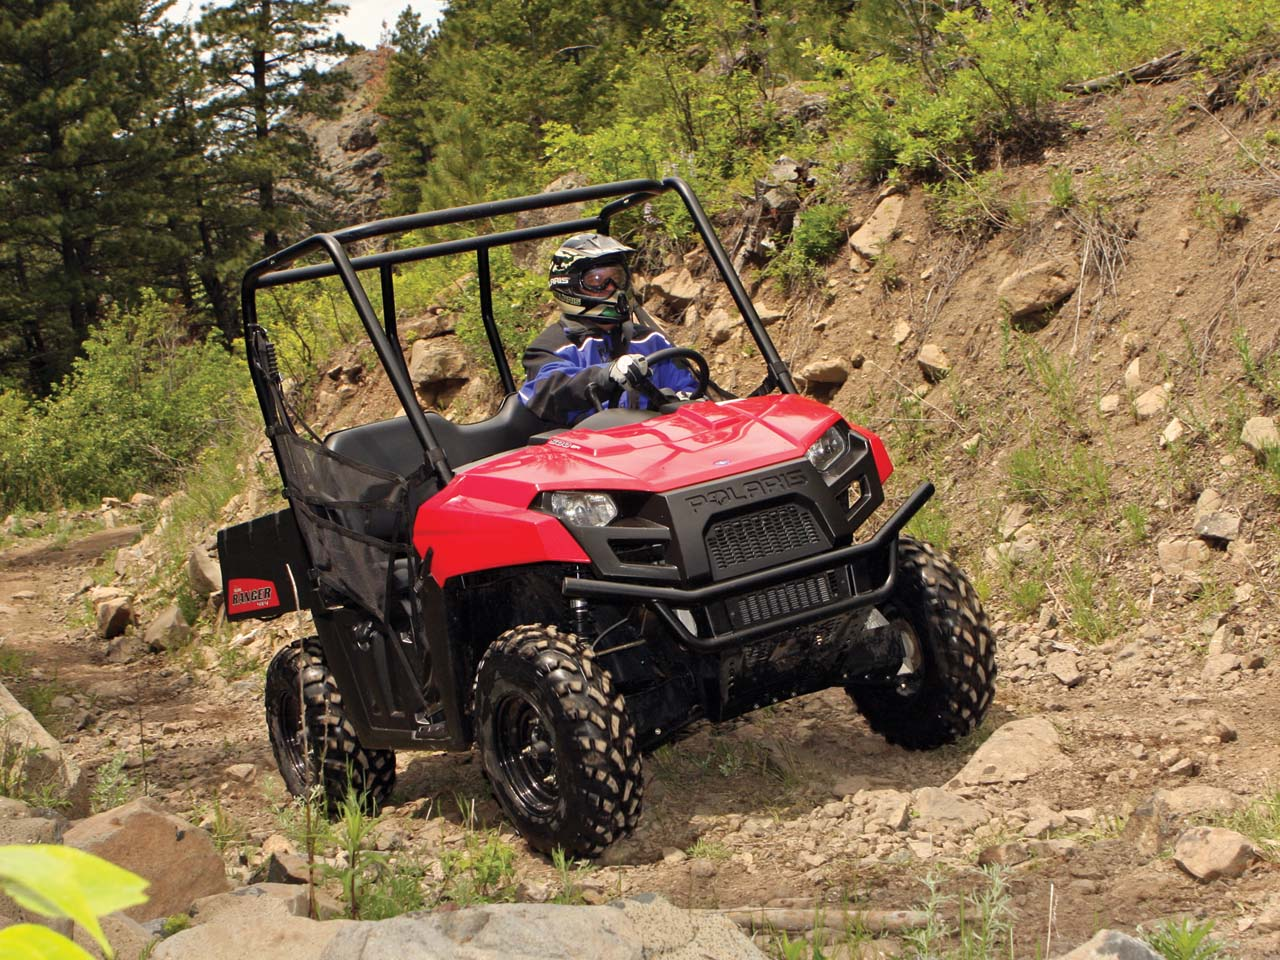 2012 polaris ranger 500 efi review atv illustrated. Black Bedroom Furniture Sets. Home Design Ideas